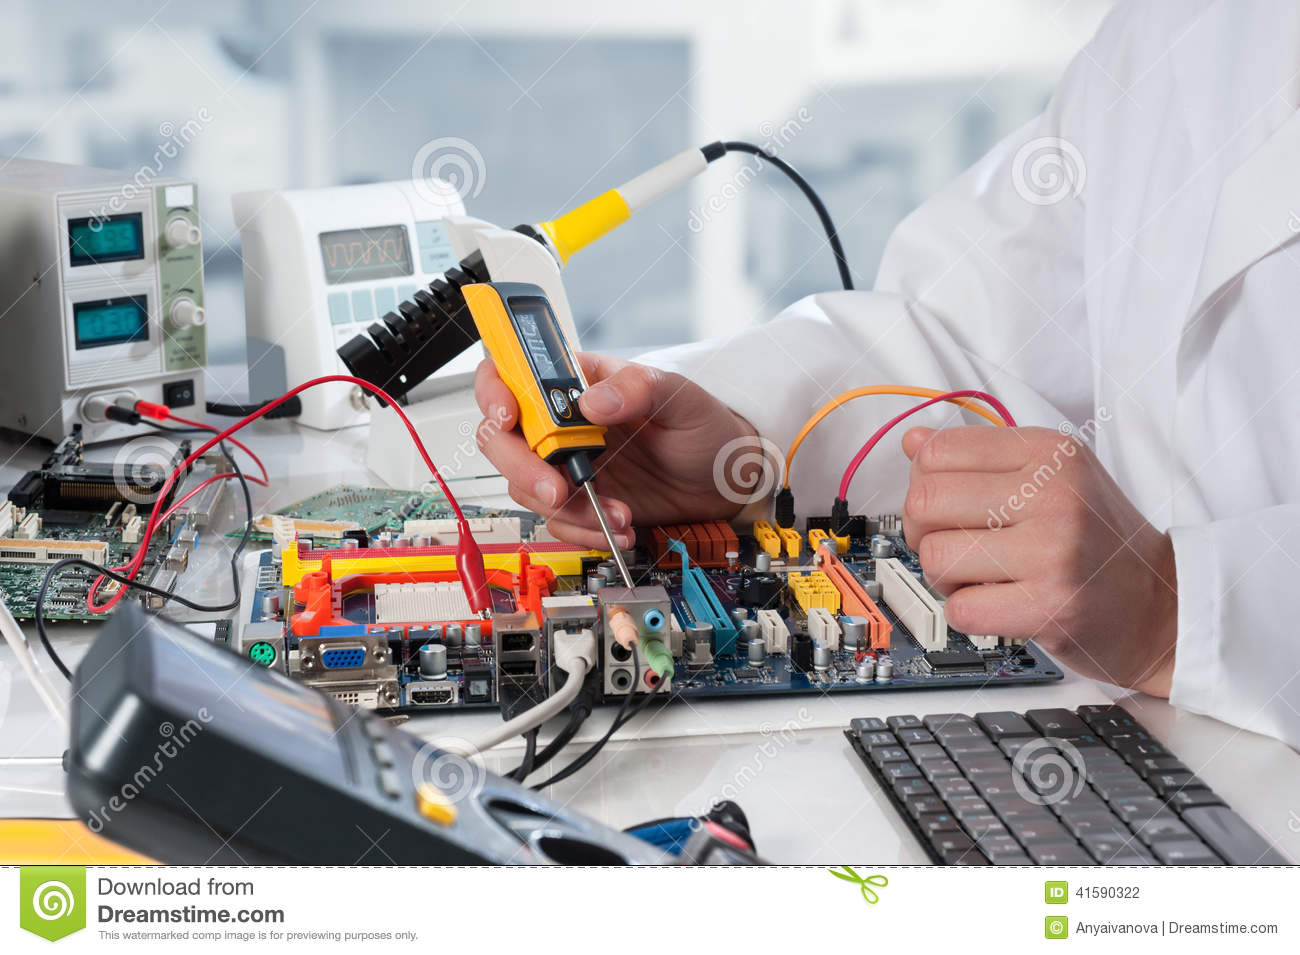 Stock Photo Repairman Fixes Electronic Equipment Service Center Image41590322 on electronic repair service